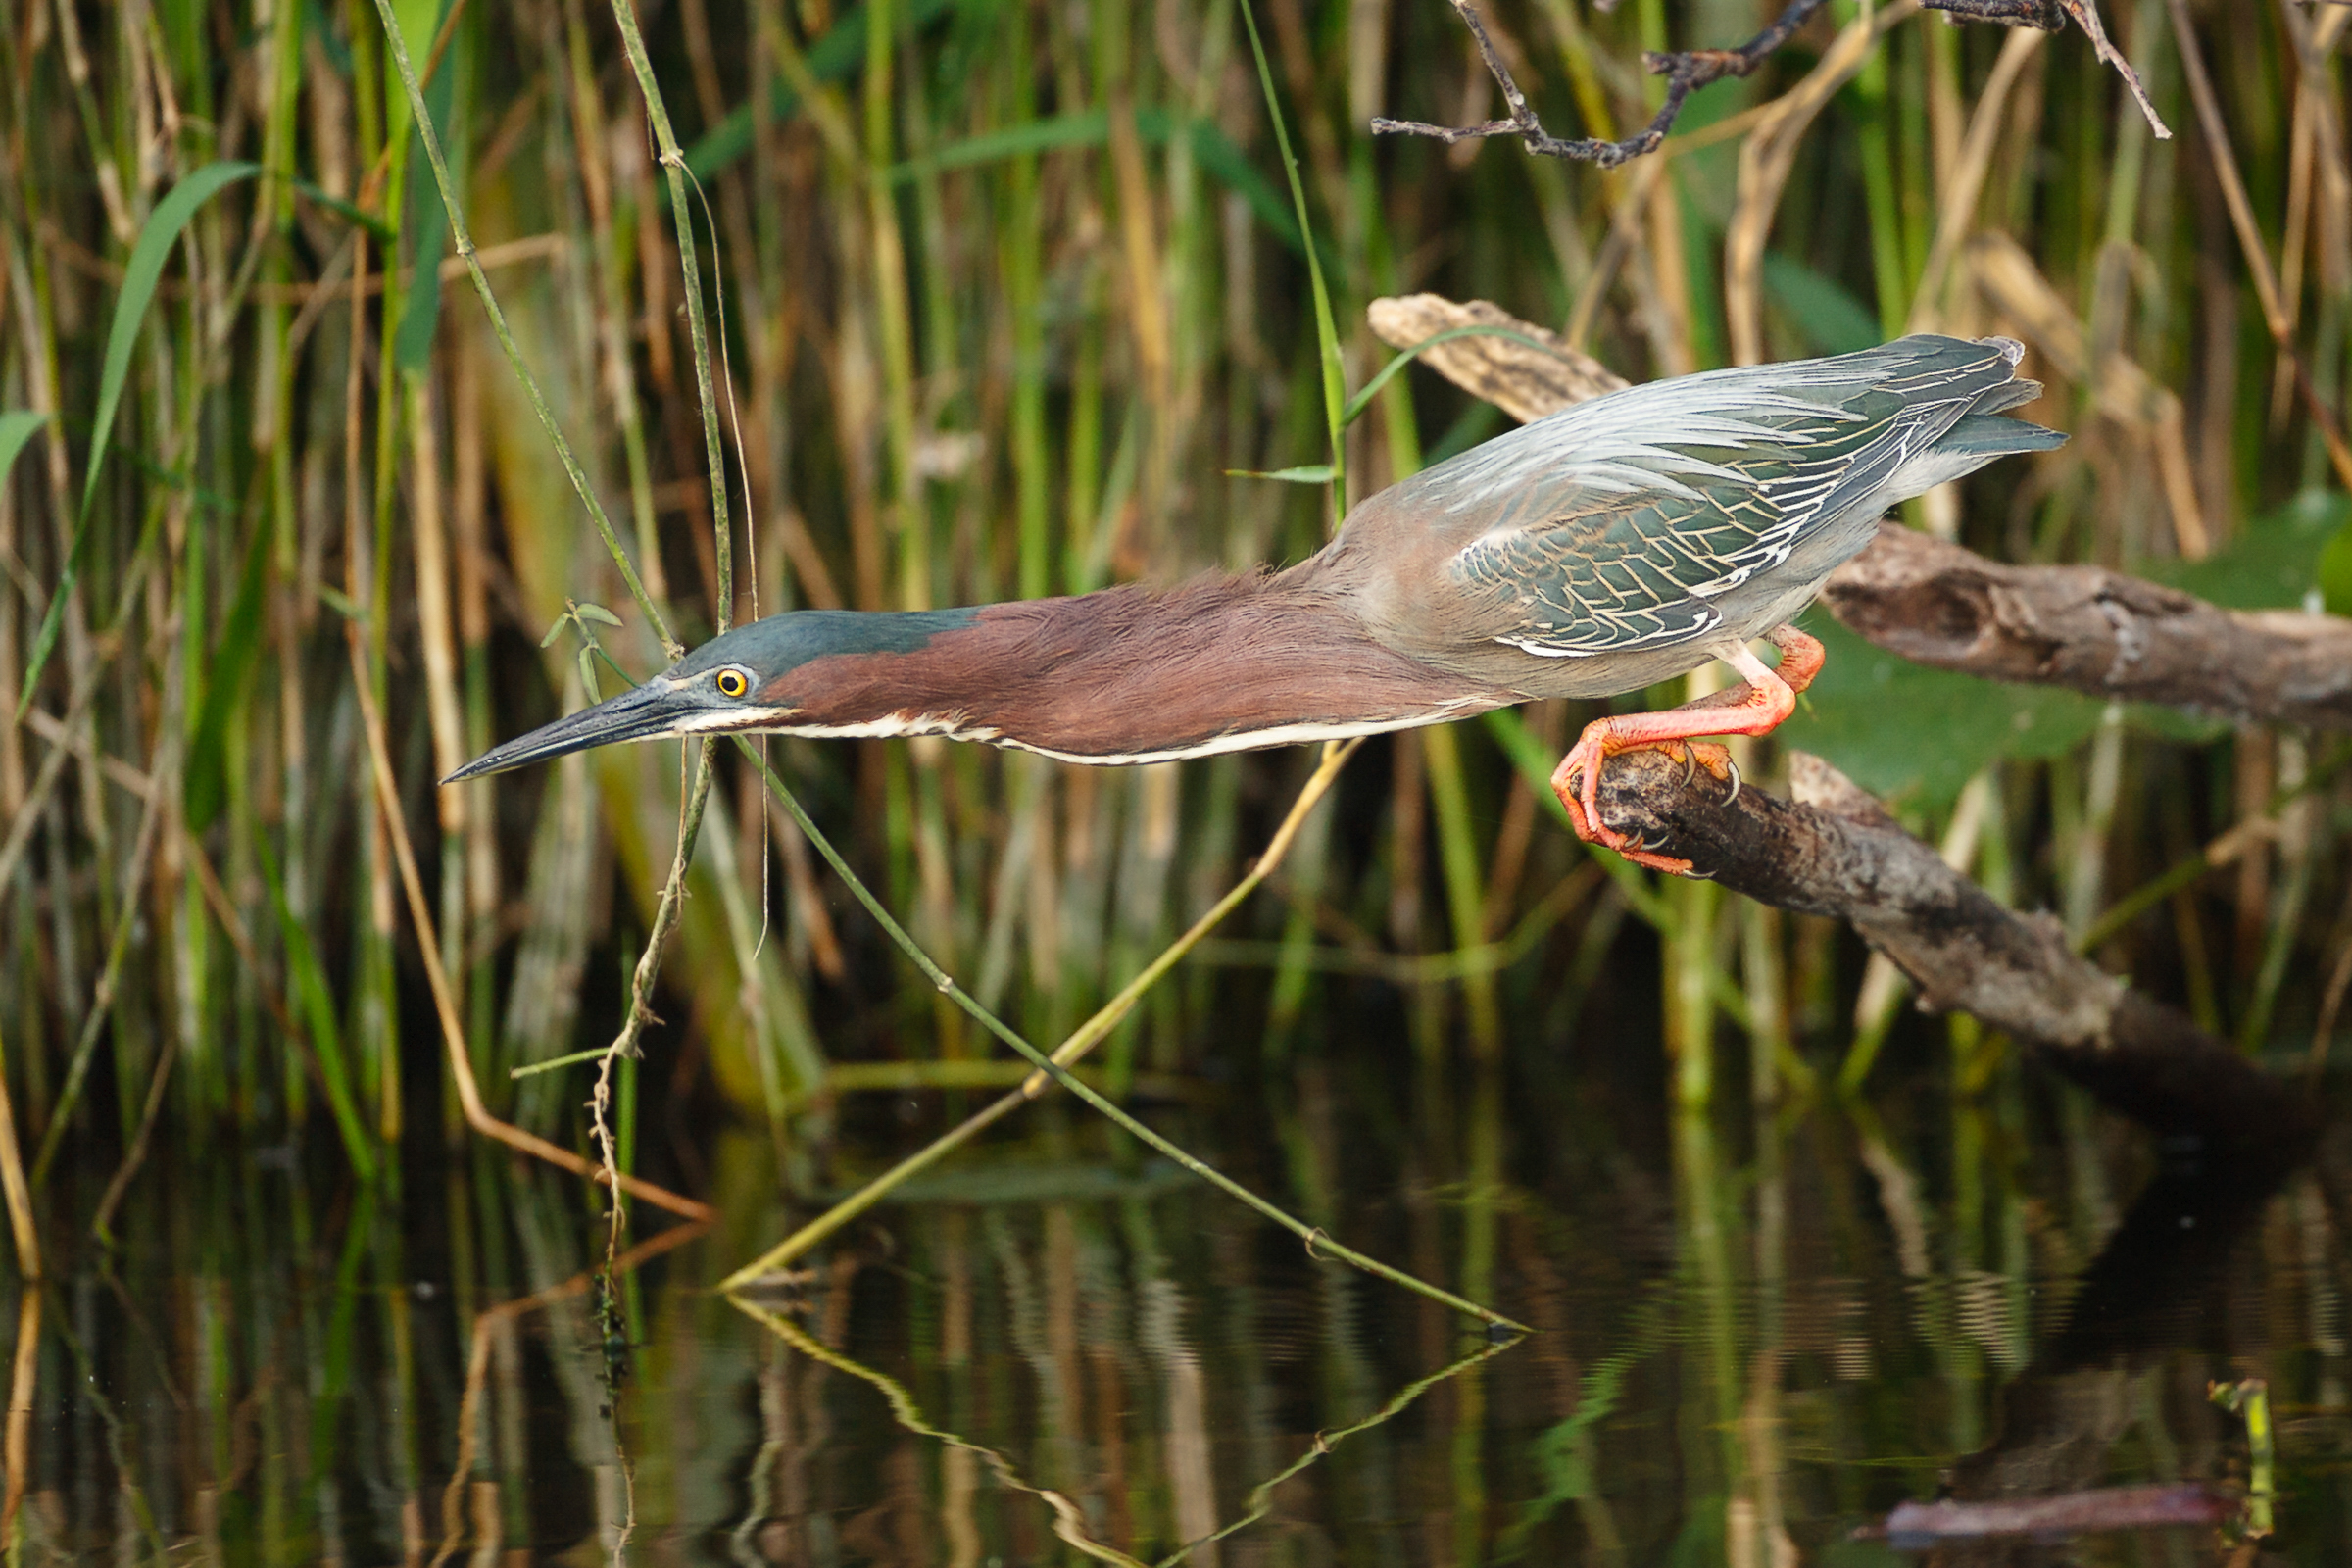 A Green Heron leans over the water, looking for prey. Edward Cordes/Audubon Photography Awards.